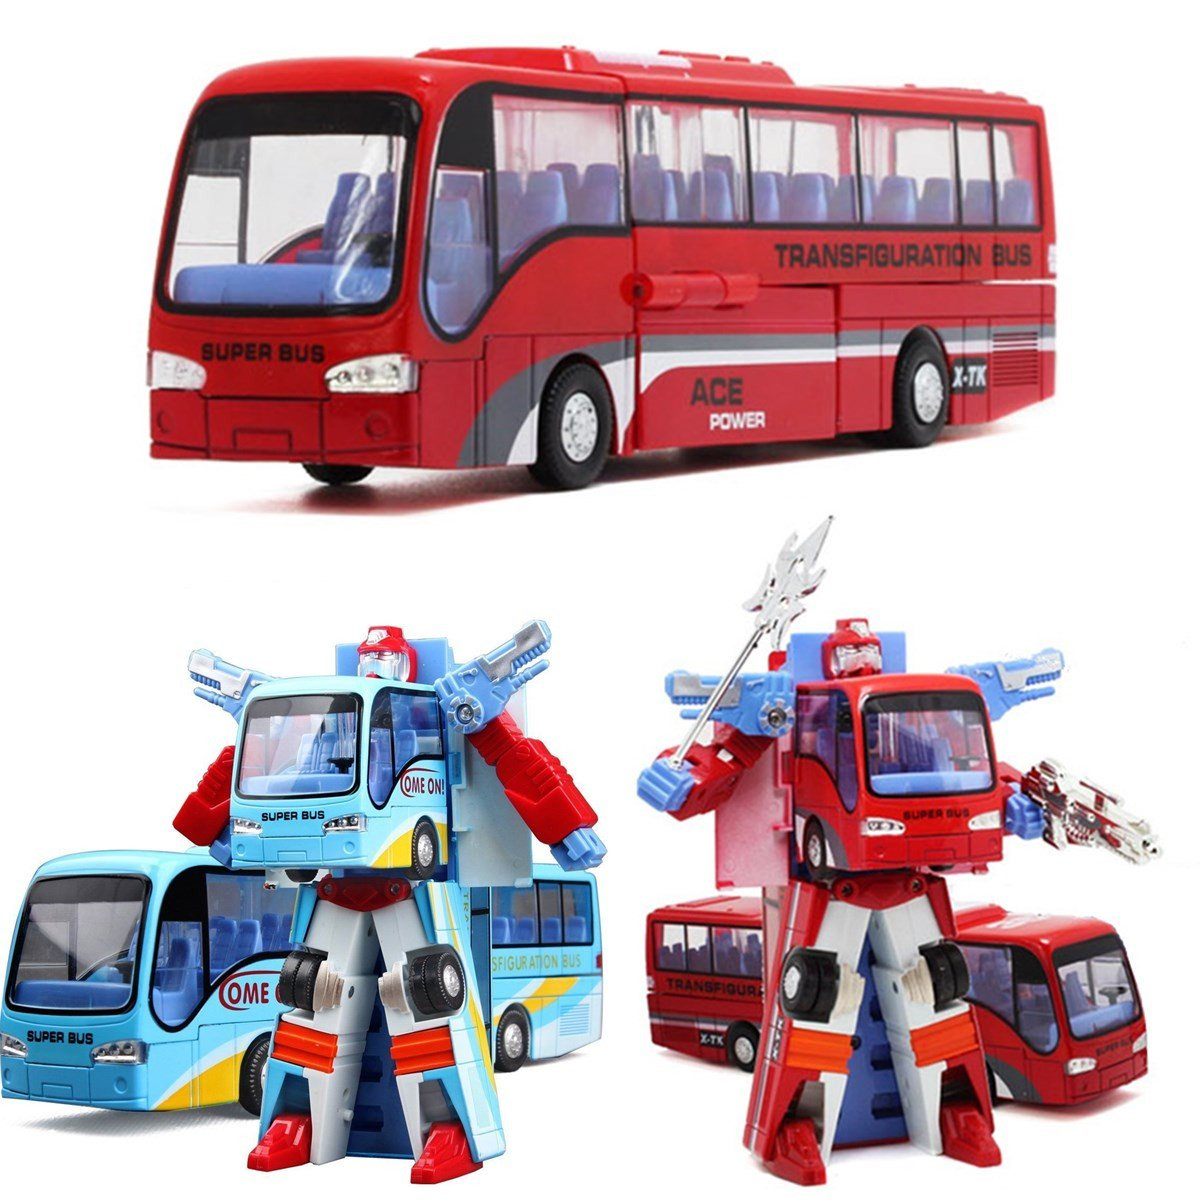 Alloy Robot Transformation Car Toys Alloy Deformation P olice Robot Bus Toy For Kids children Birthday Christmas gift alloy plastic engineering vehicles deformation car robot transformation toys robot set action figure model for kids gift